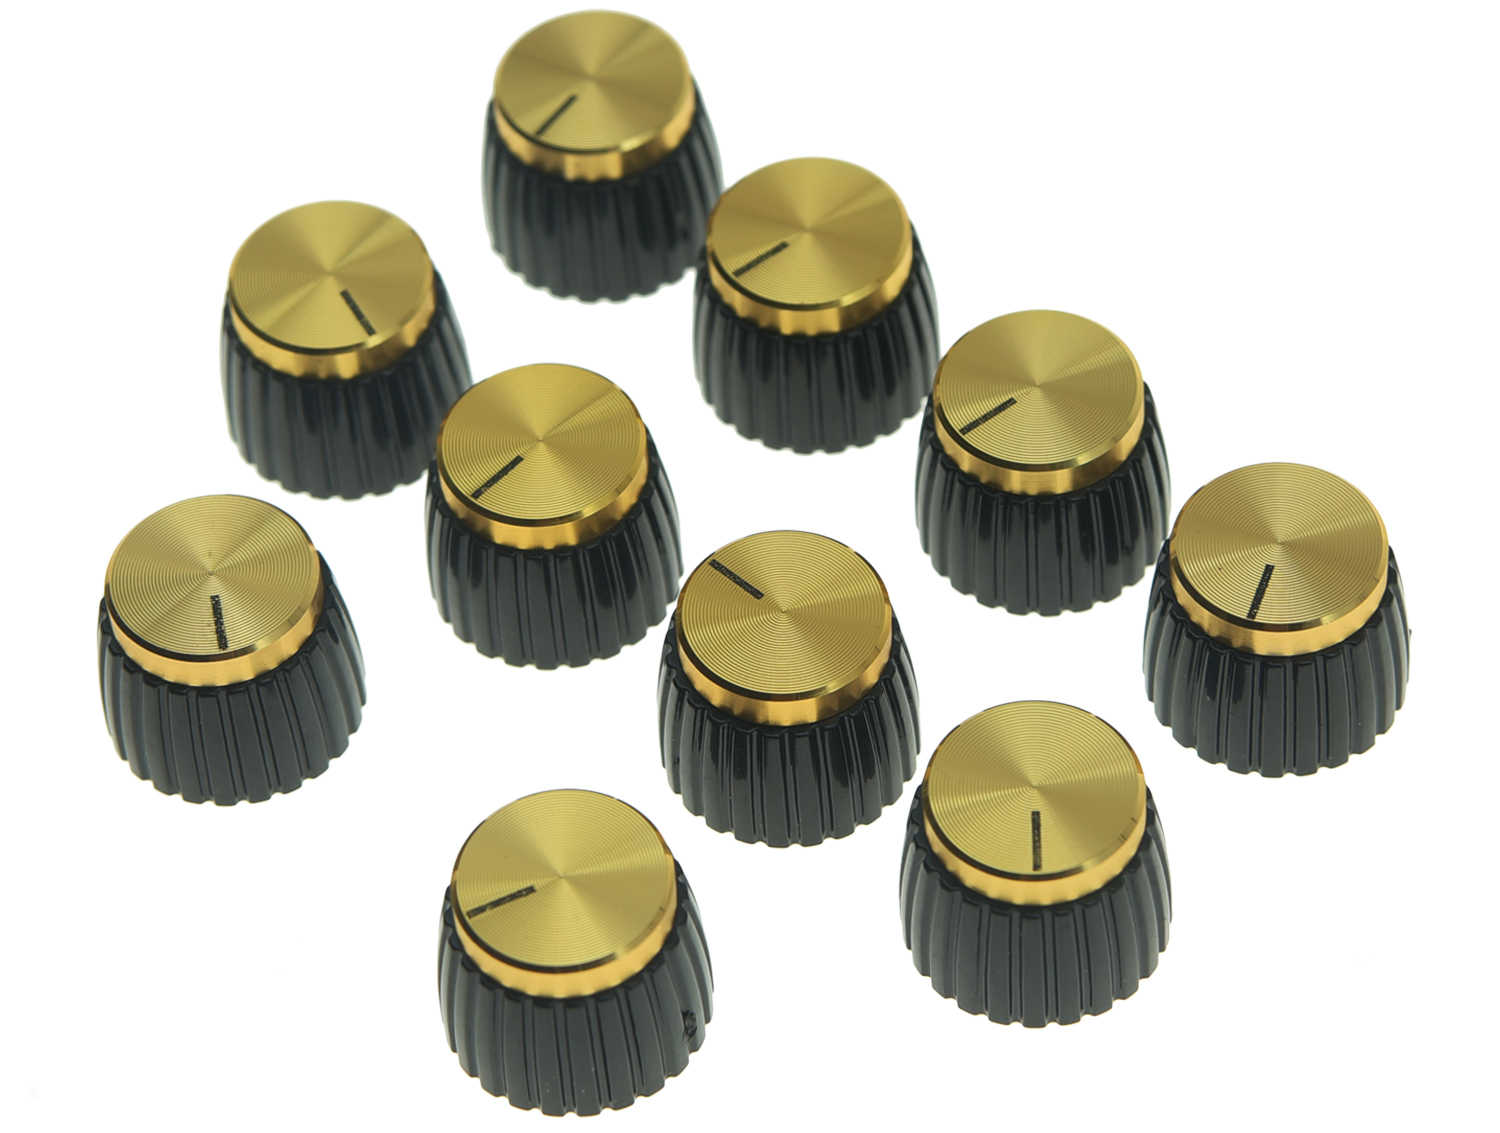 KAISH Pack of 10/20/50 pcs Guitar Amplifier Knobs Gold Cap Push On Knob fits Marshall AMP